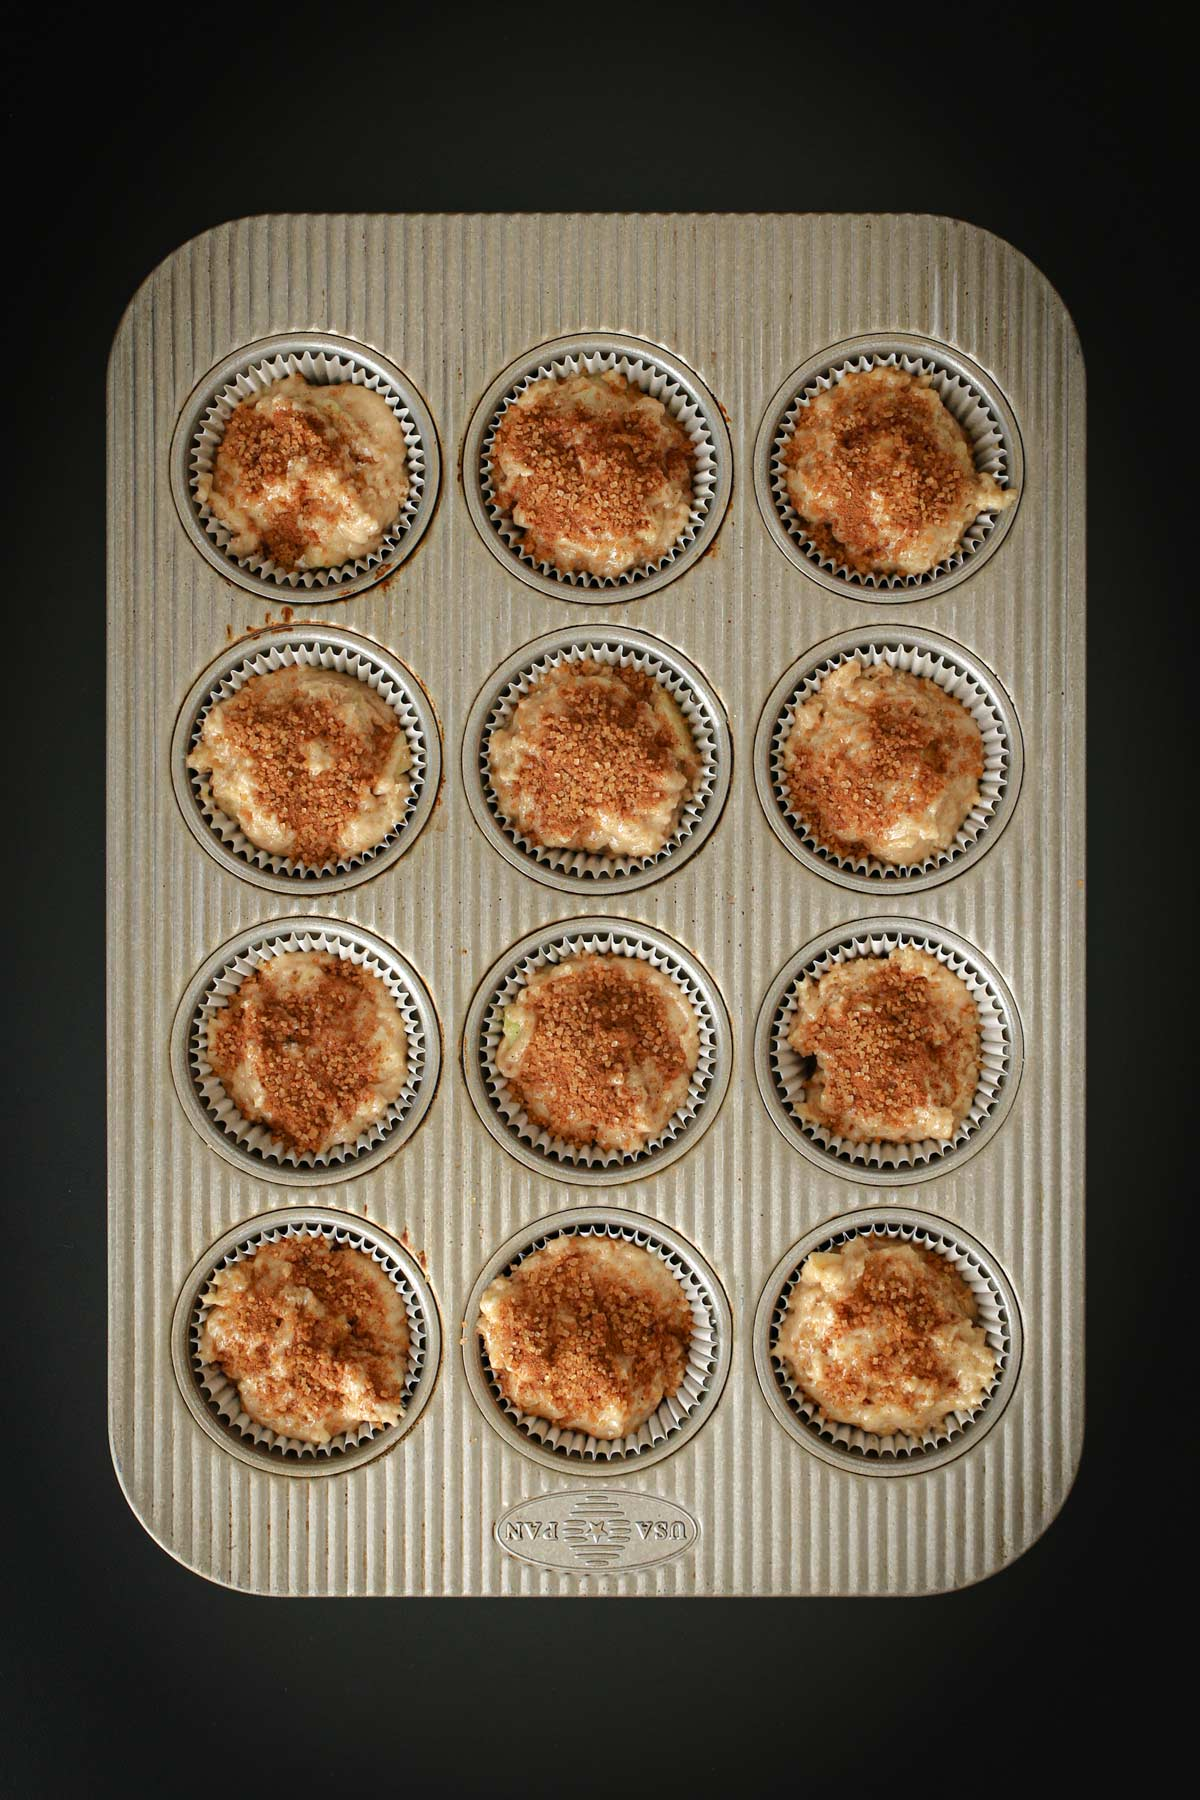 cinnamon sugar topping sprinkled generously atop the batter in each cup.